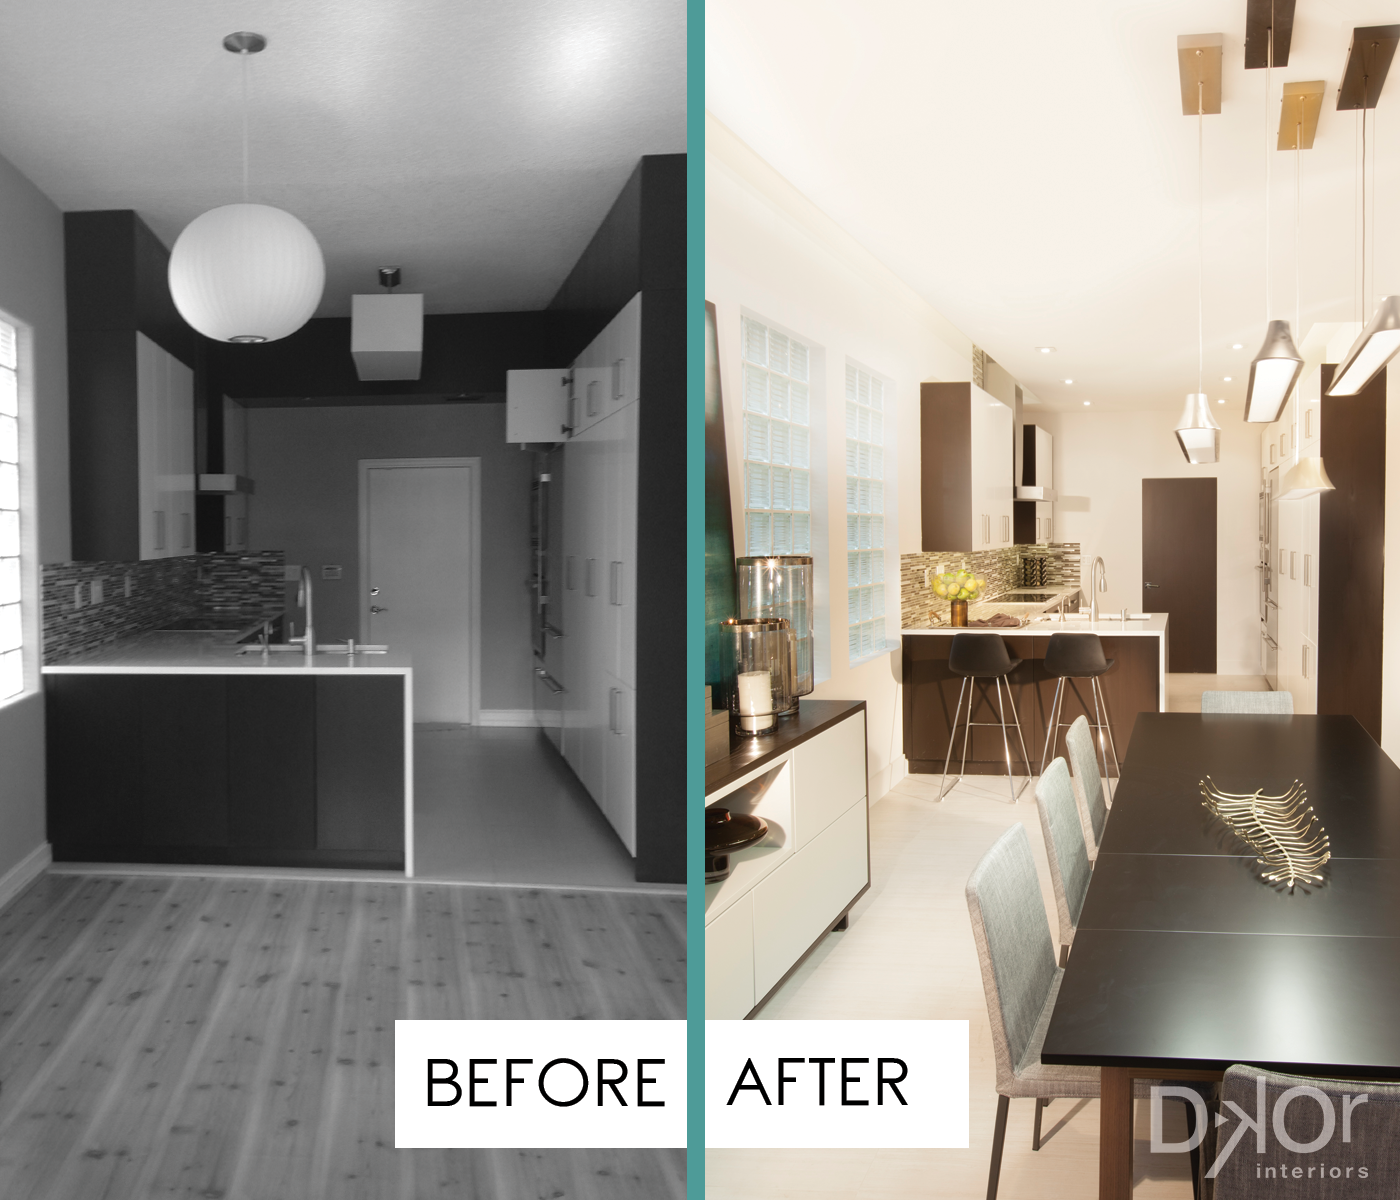 A Contemporary Moody Home - Residential Interior Design Project in Aventura, Florida #Remodel #InteriorDesign #MiamiInteriorDesign #KitchenRemodel #DiningRoom